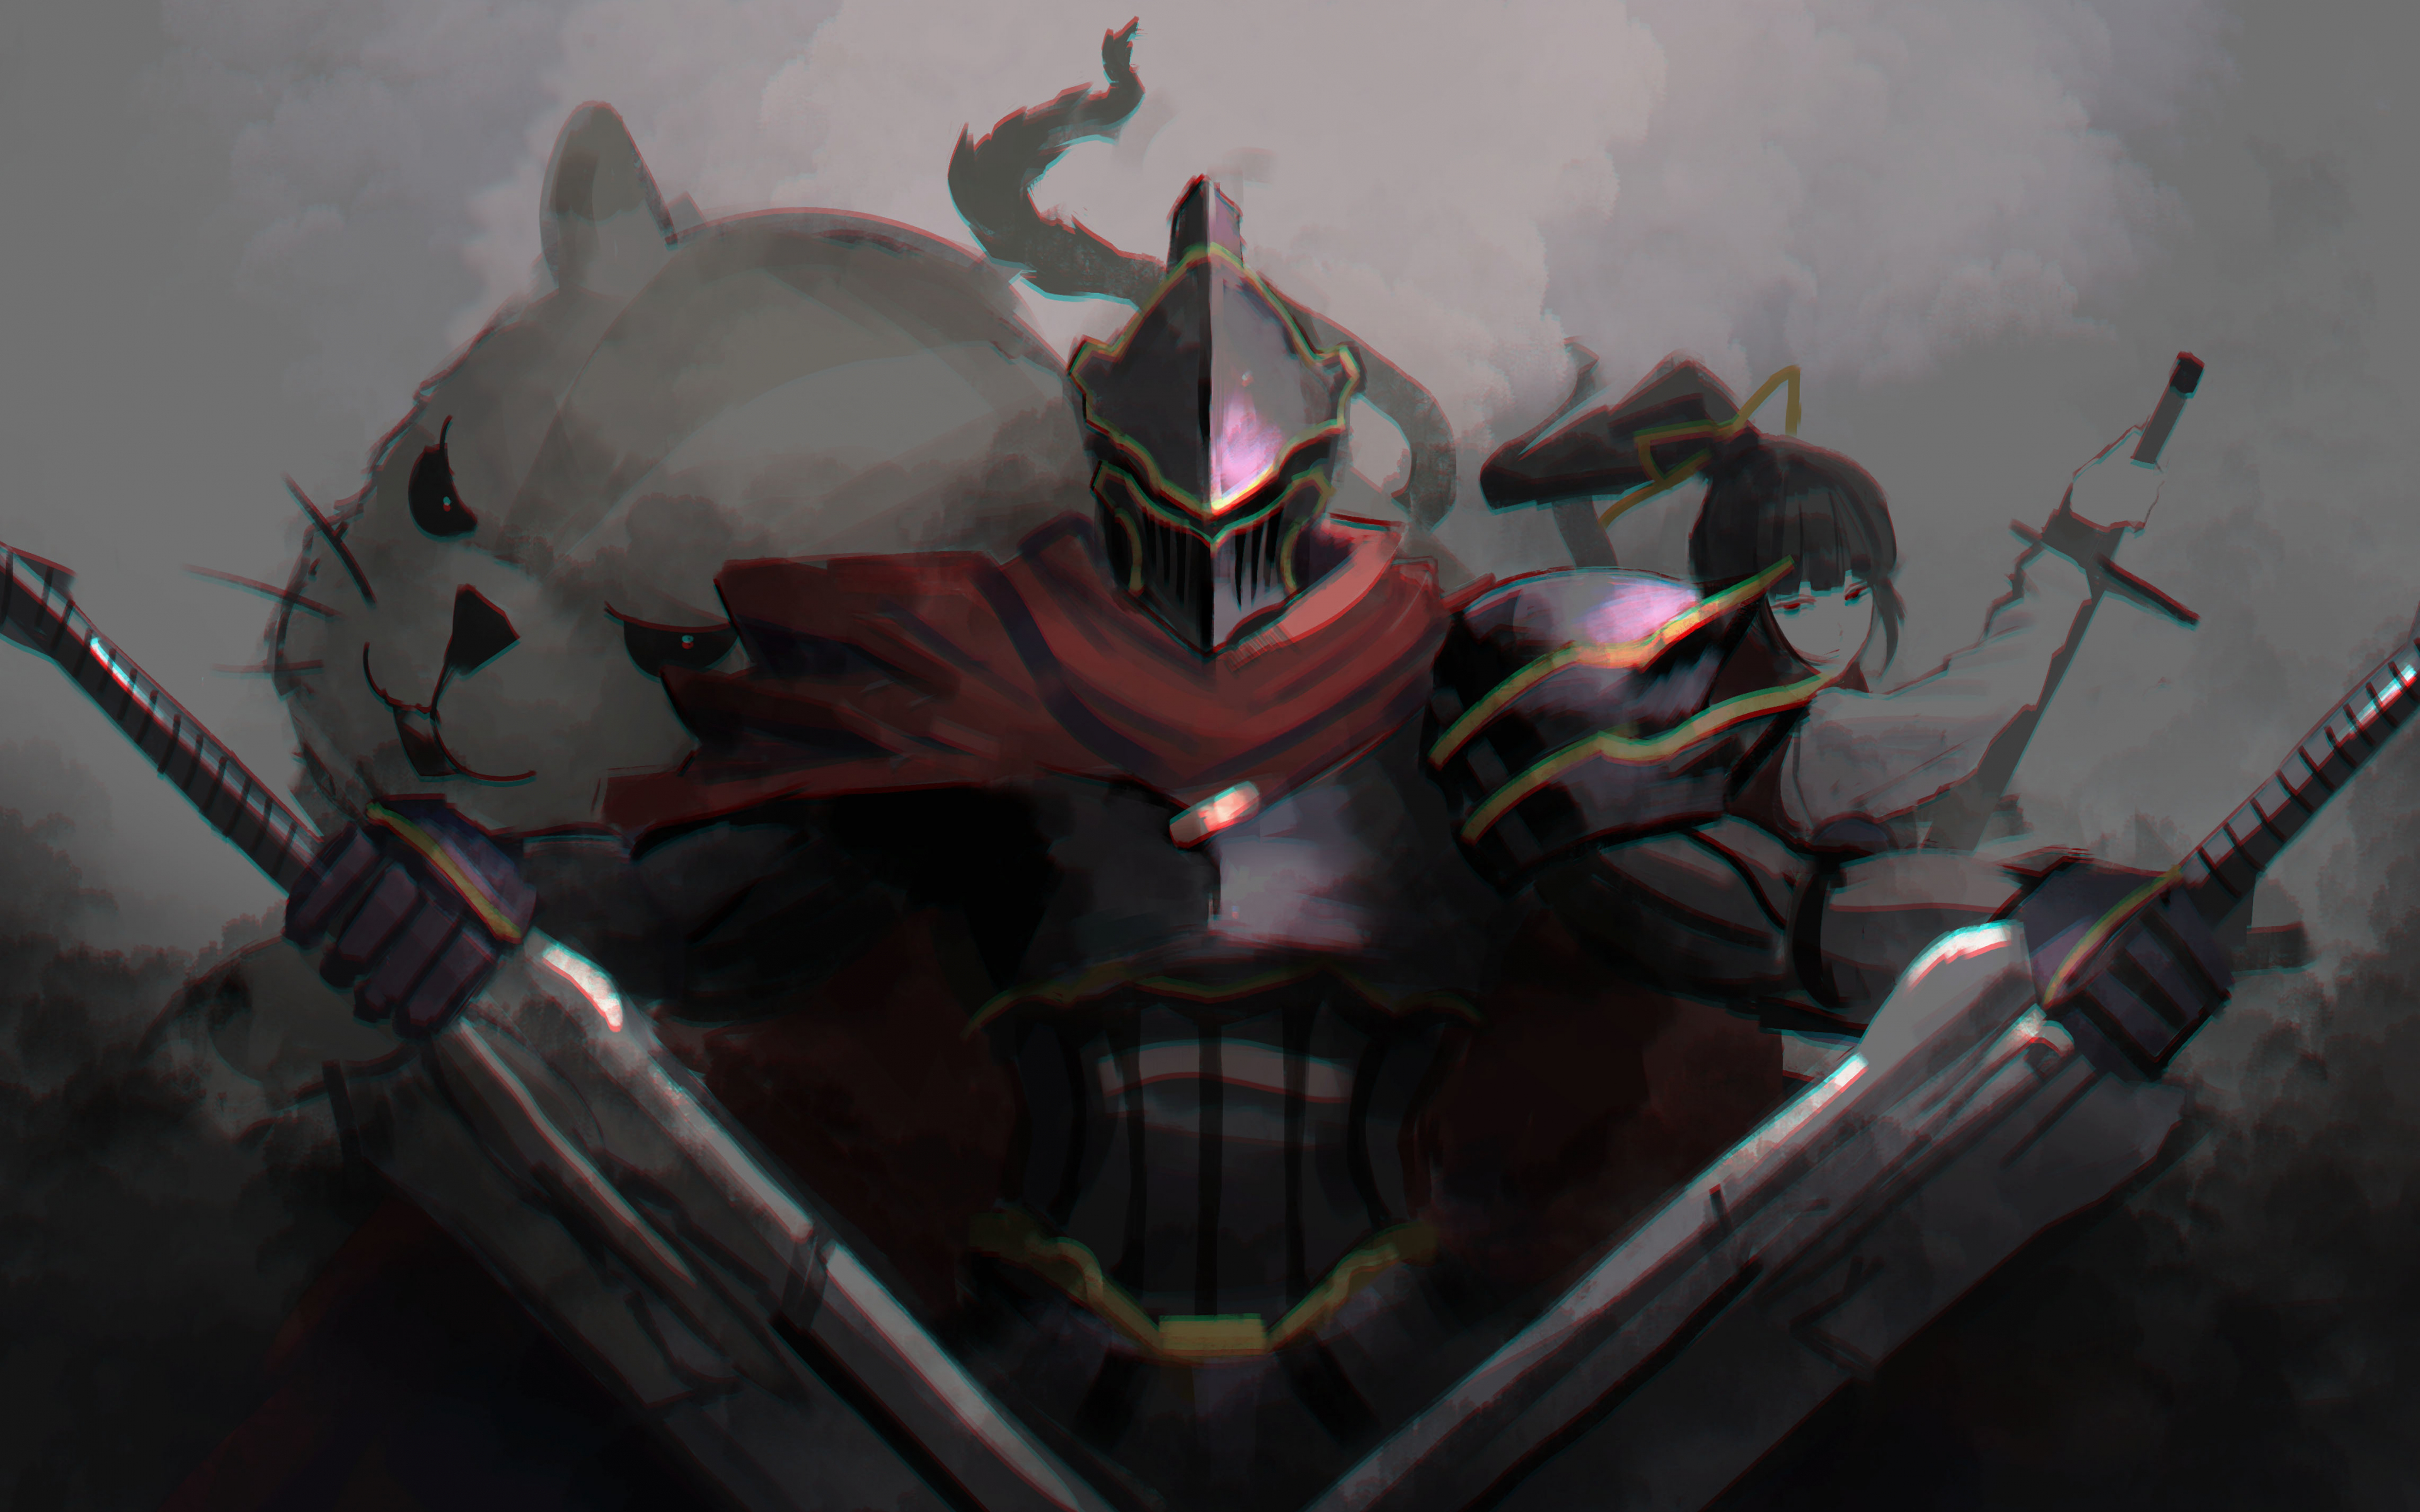 Downaload Overlord King And Warriors Art Wallpaper: Download 3840x2400 Wallpaper Overlord, Anime, Armour Suit